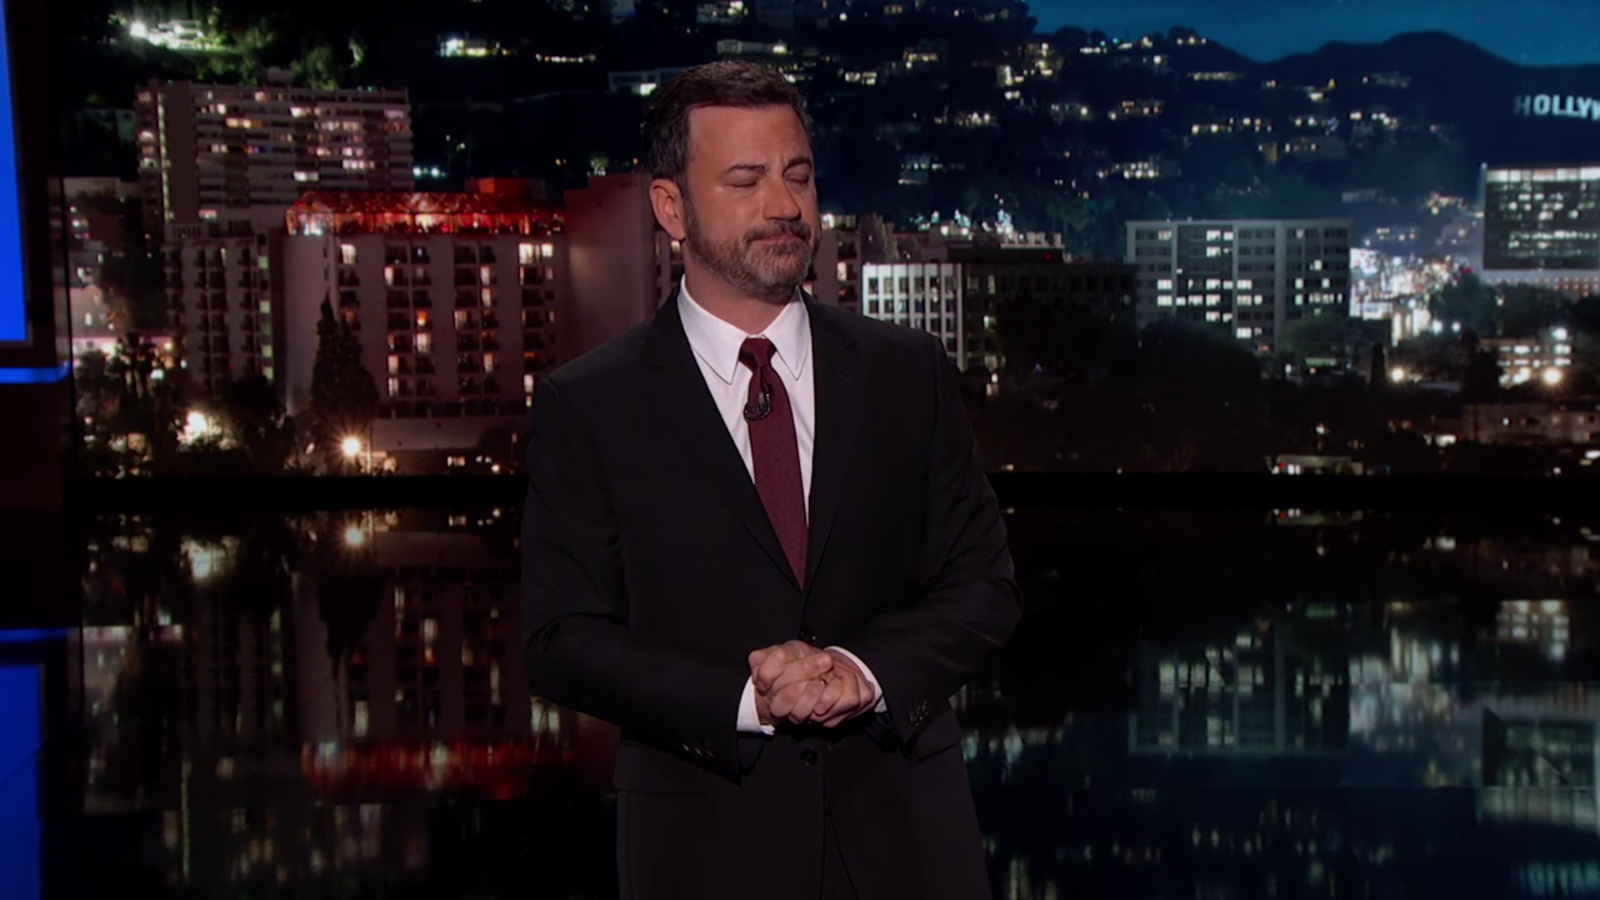 Things Jimmy Kimmel S Baby Should Have Done To Deserve